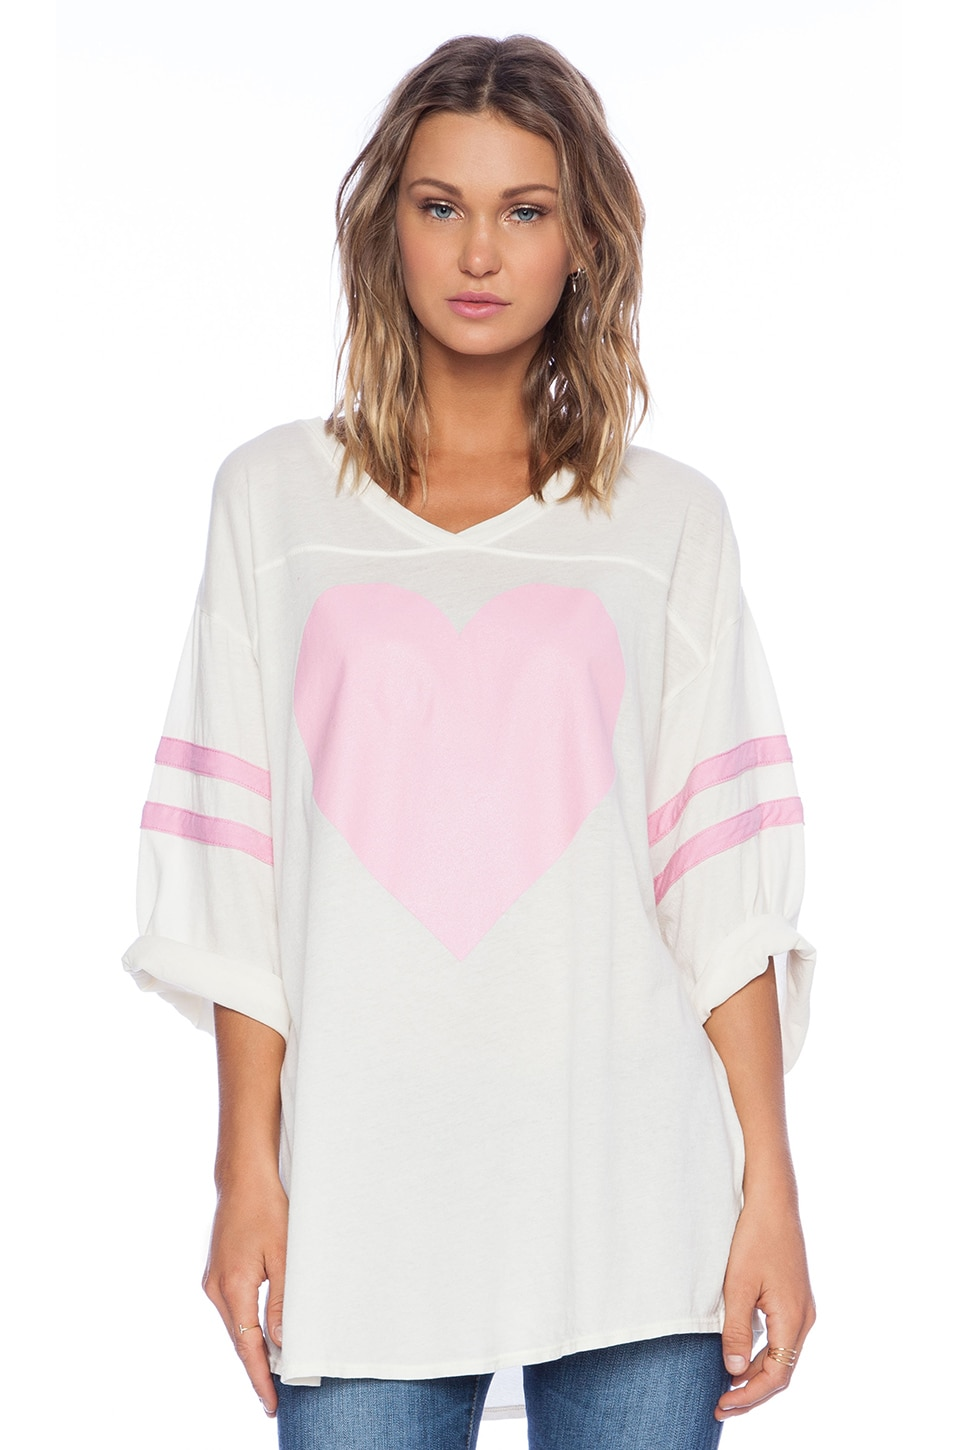 Wildfox Couture Barefoot Heart Tee in Vintage Lace